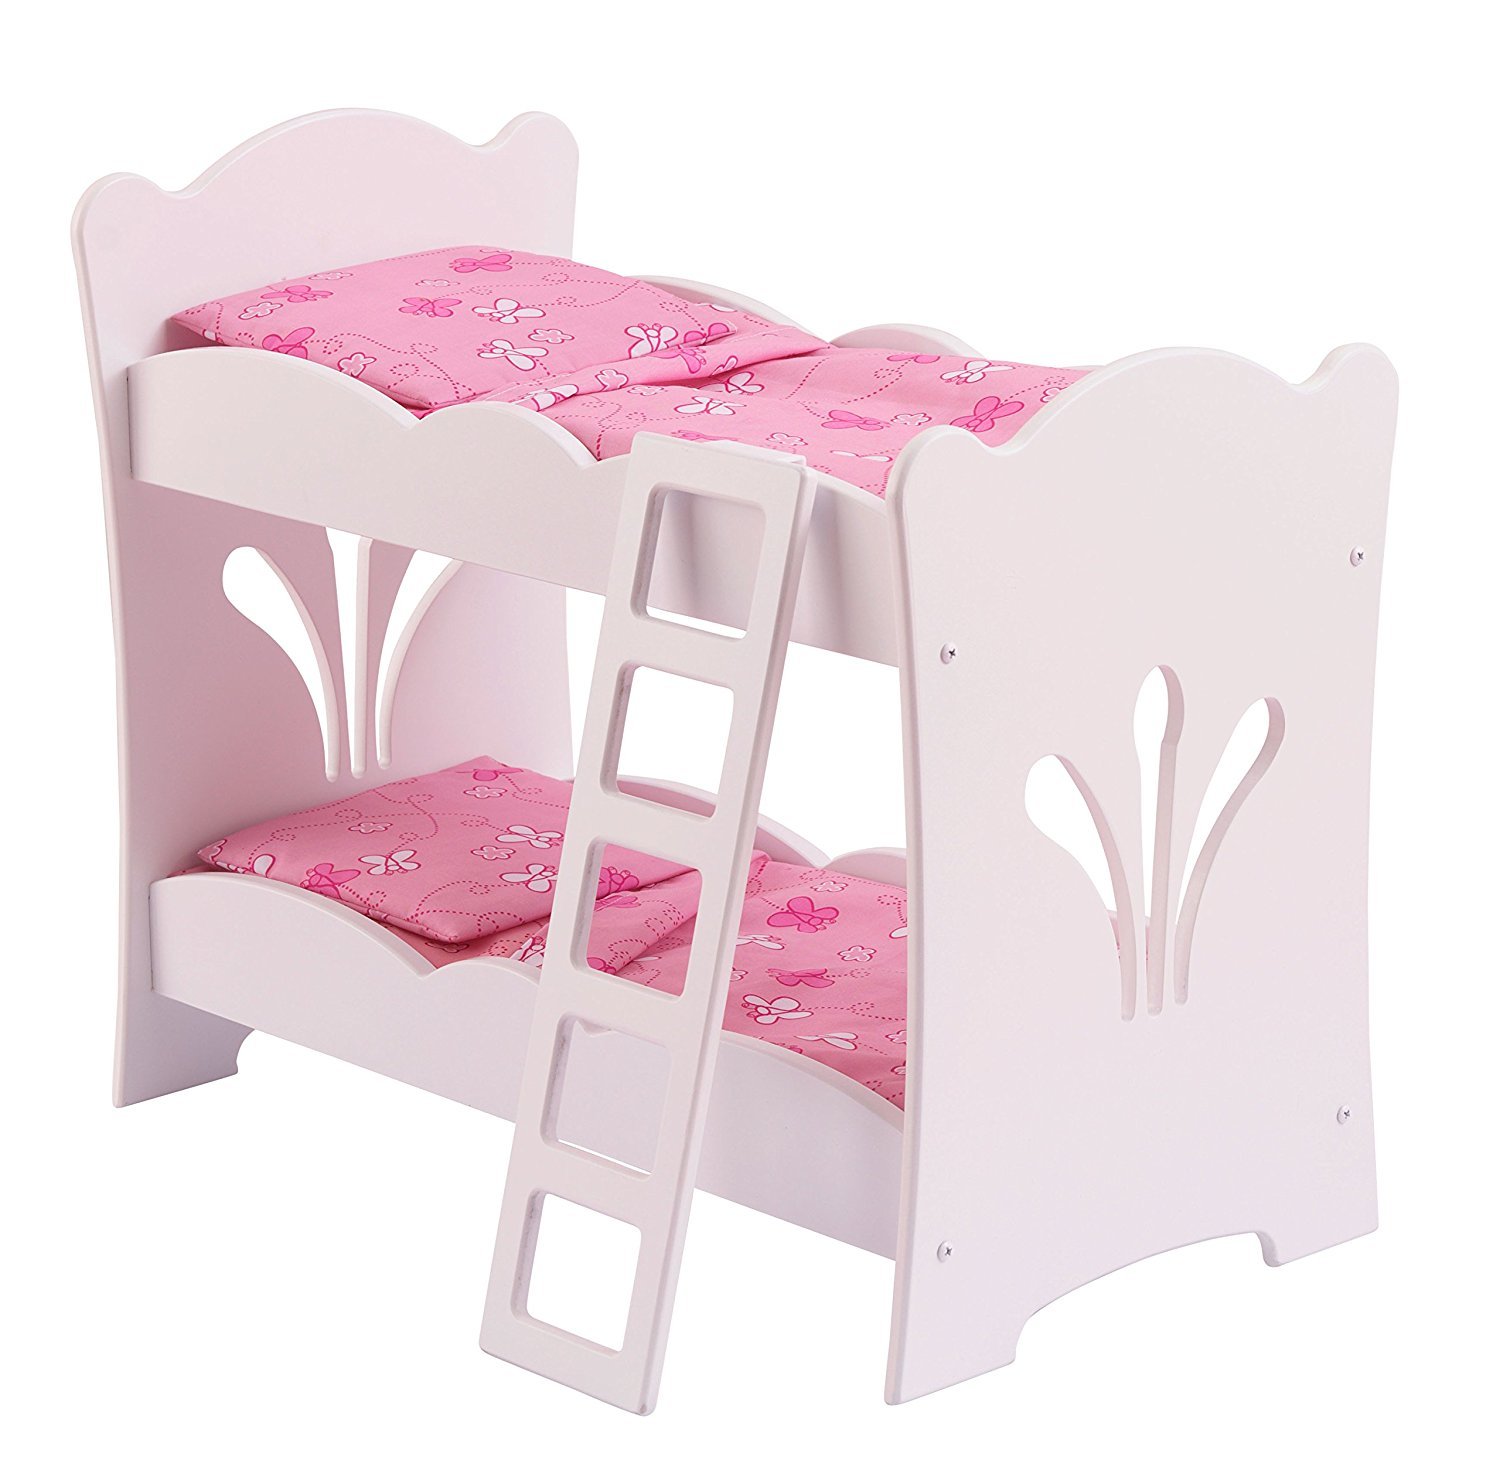 Little Doll Bunk Bed, Includes ladder that helps dolls reach the top bunk By KidKraft